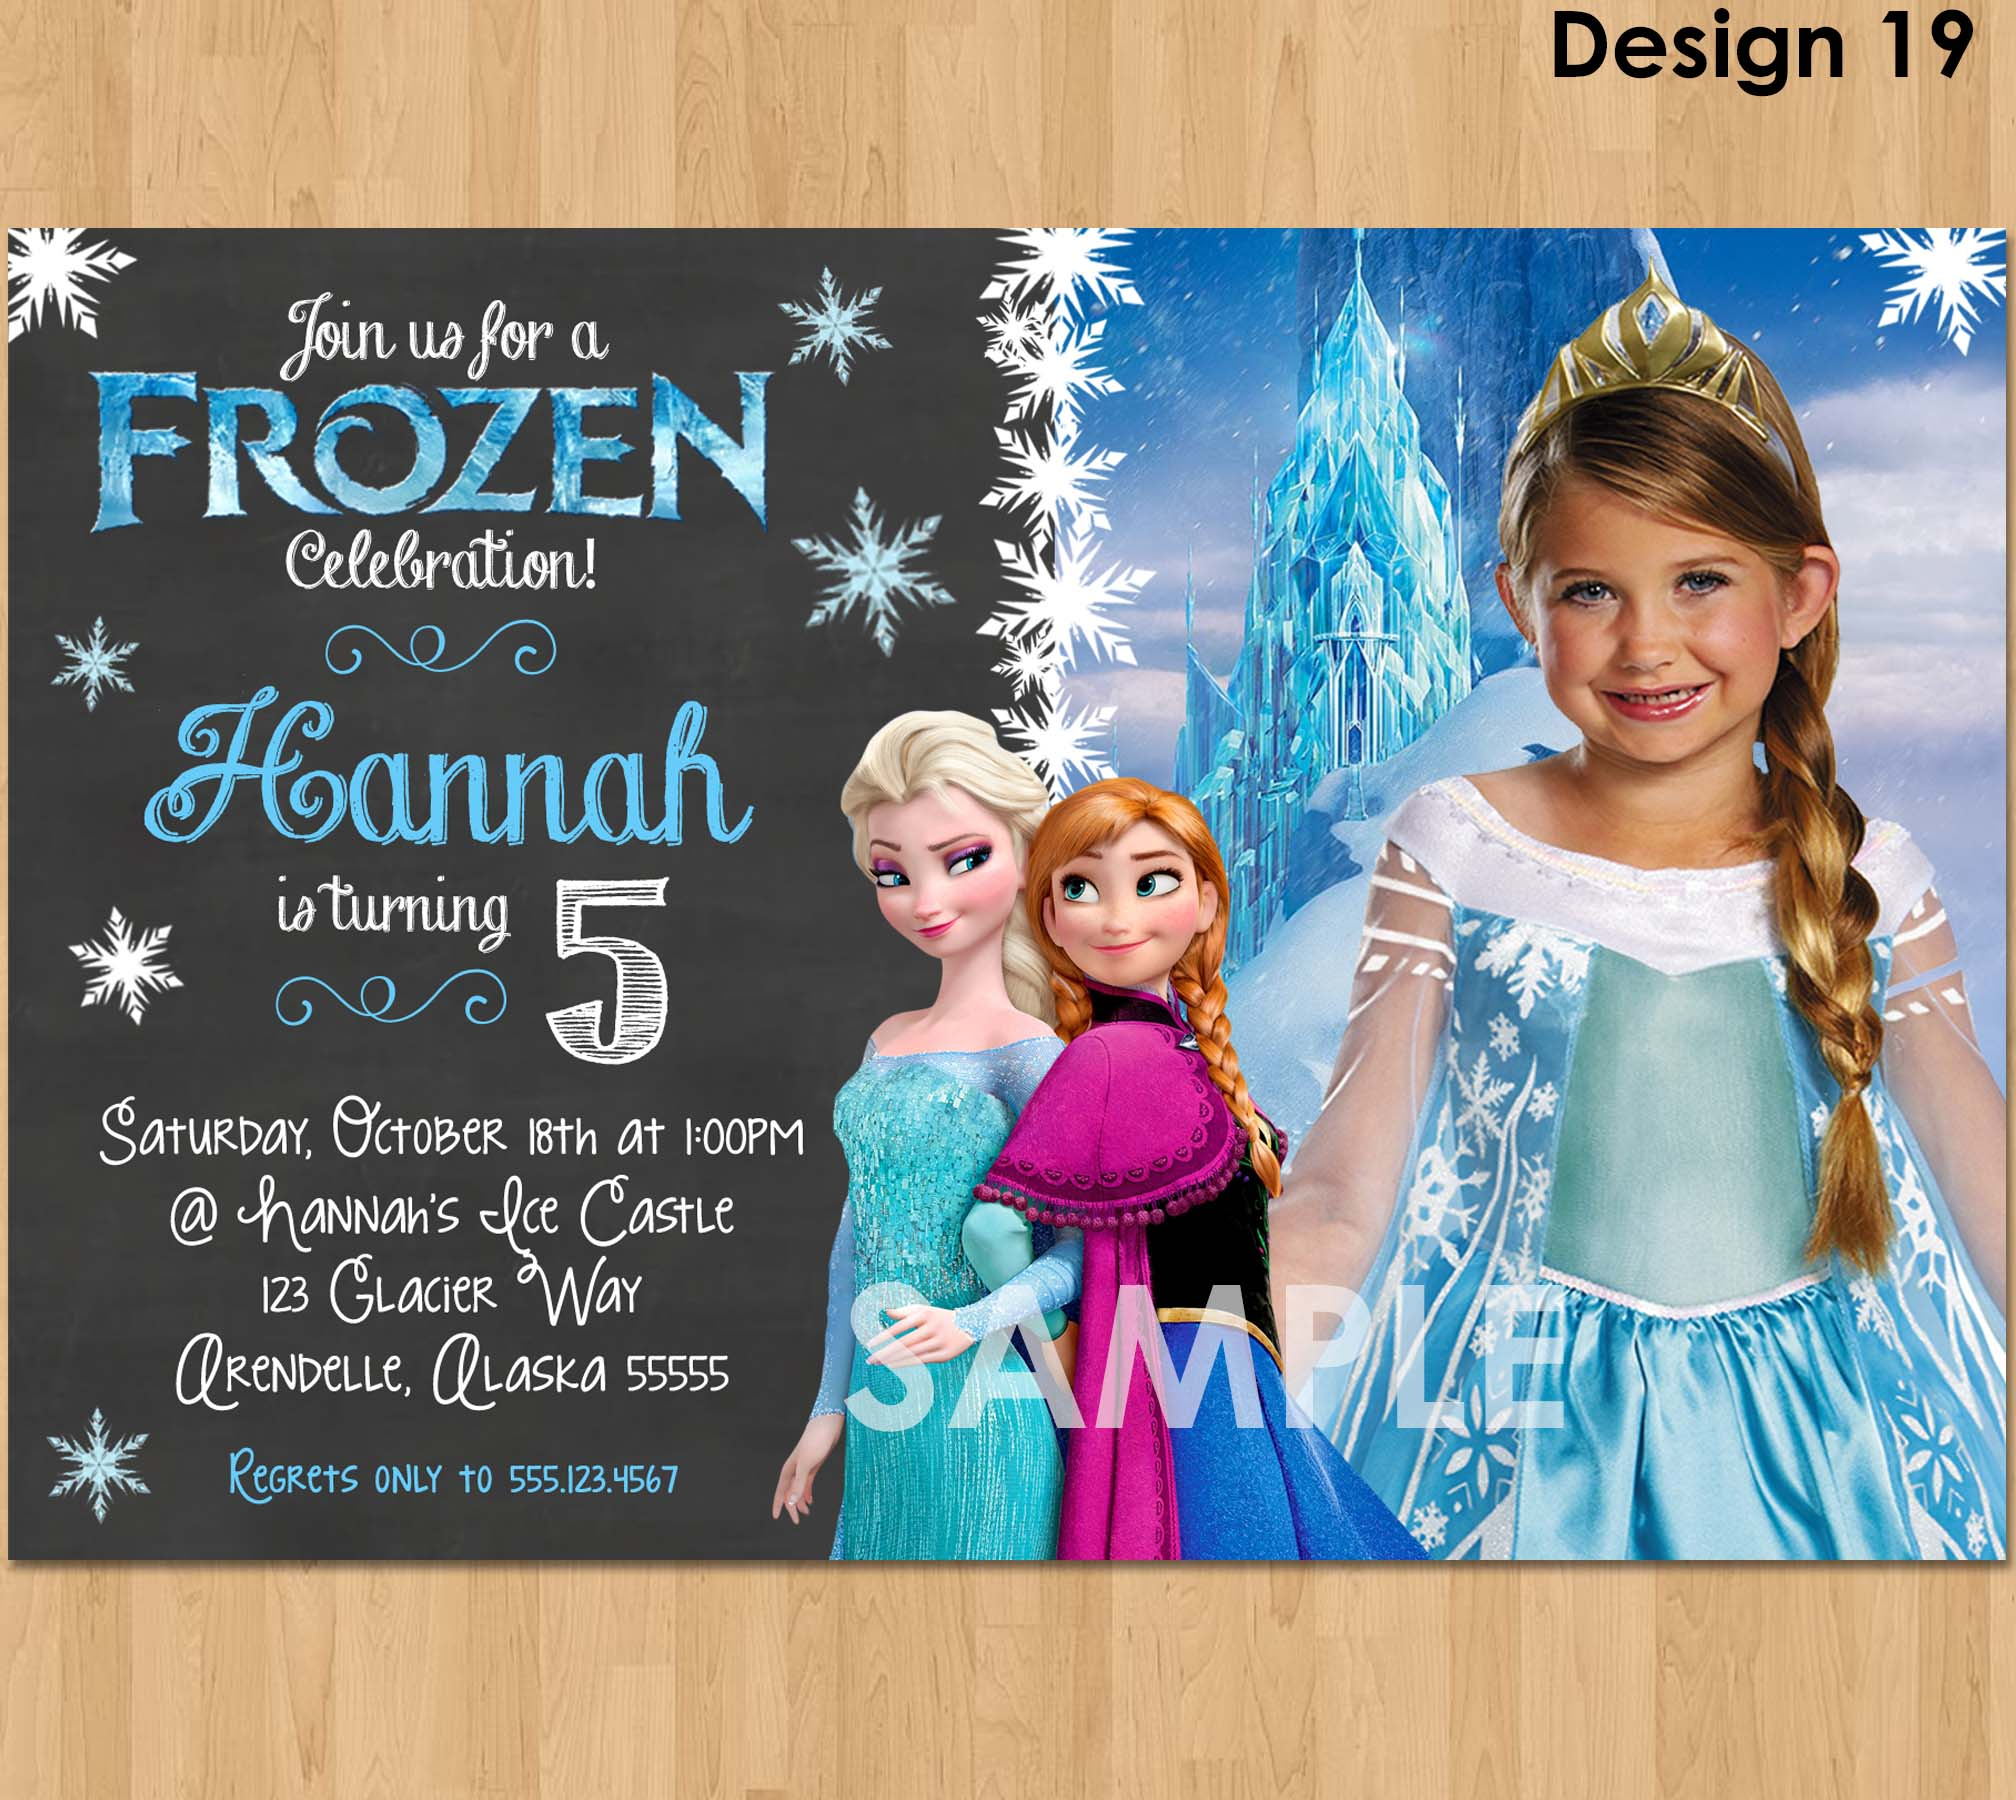 Frozen Chalkboard Invitation Frozen Photo Invitation Disney